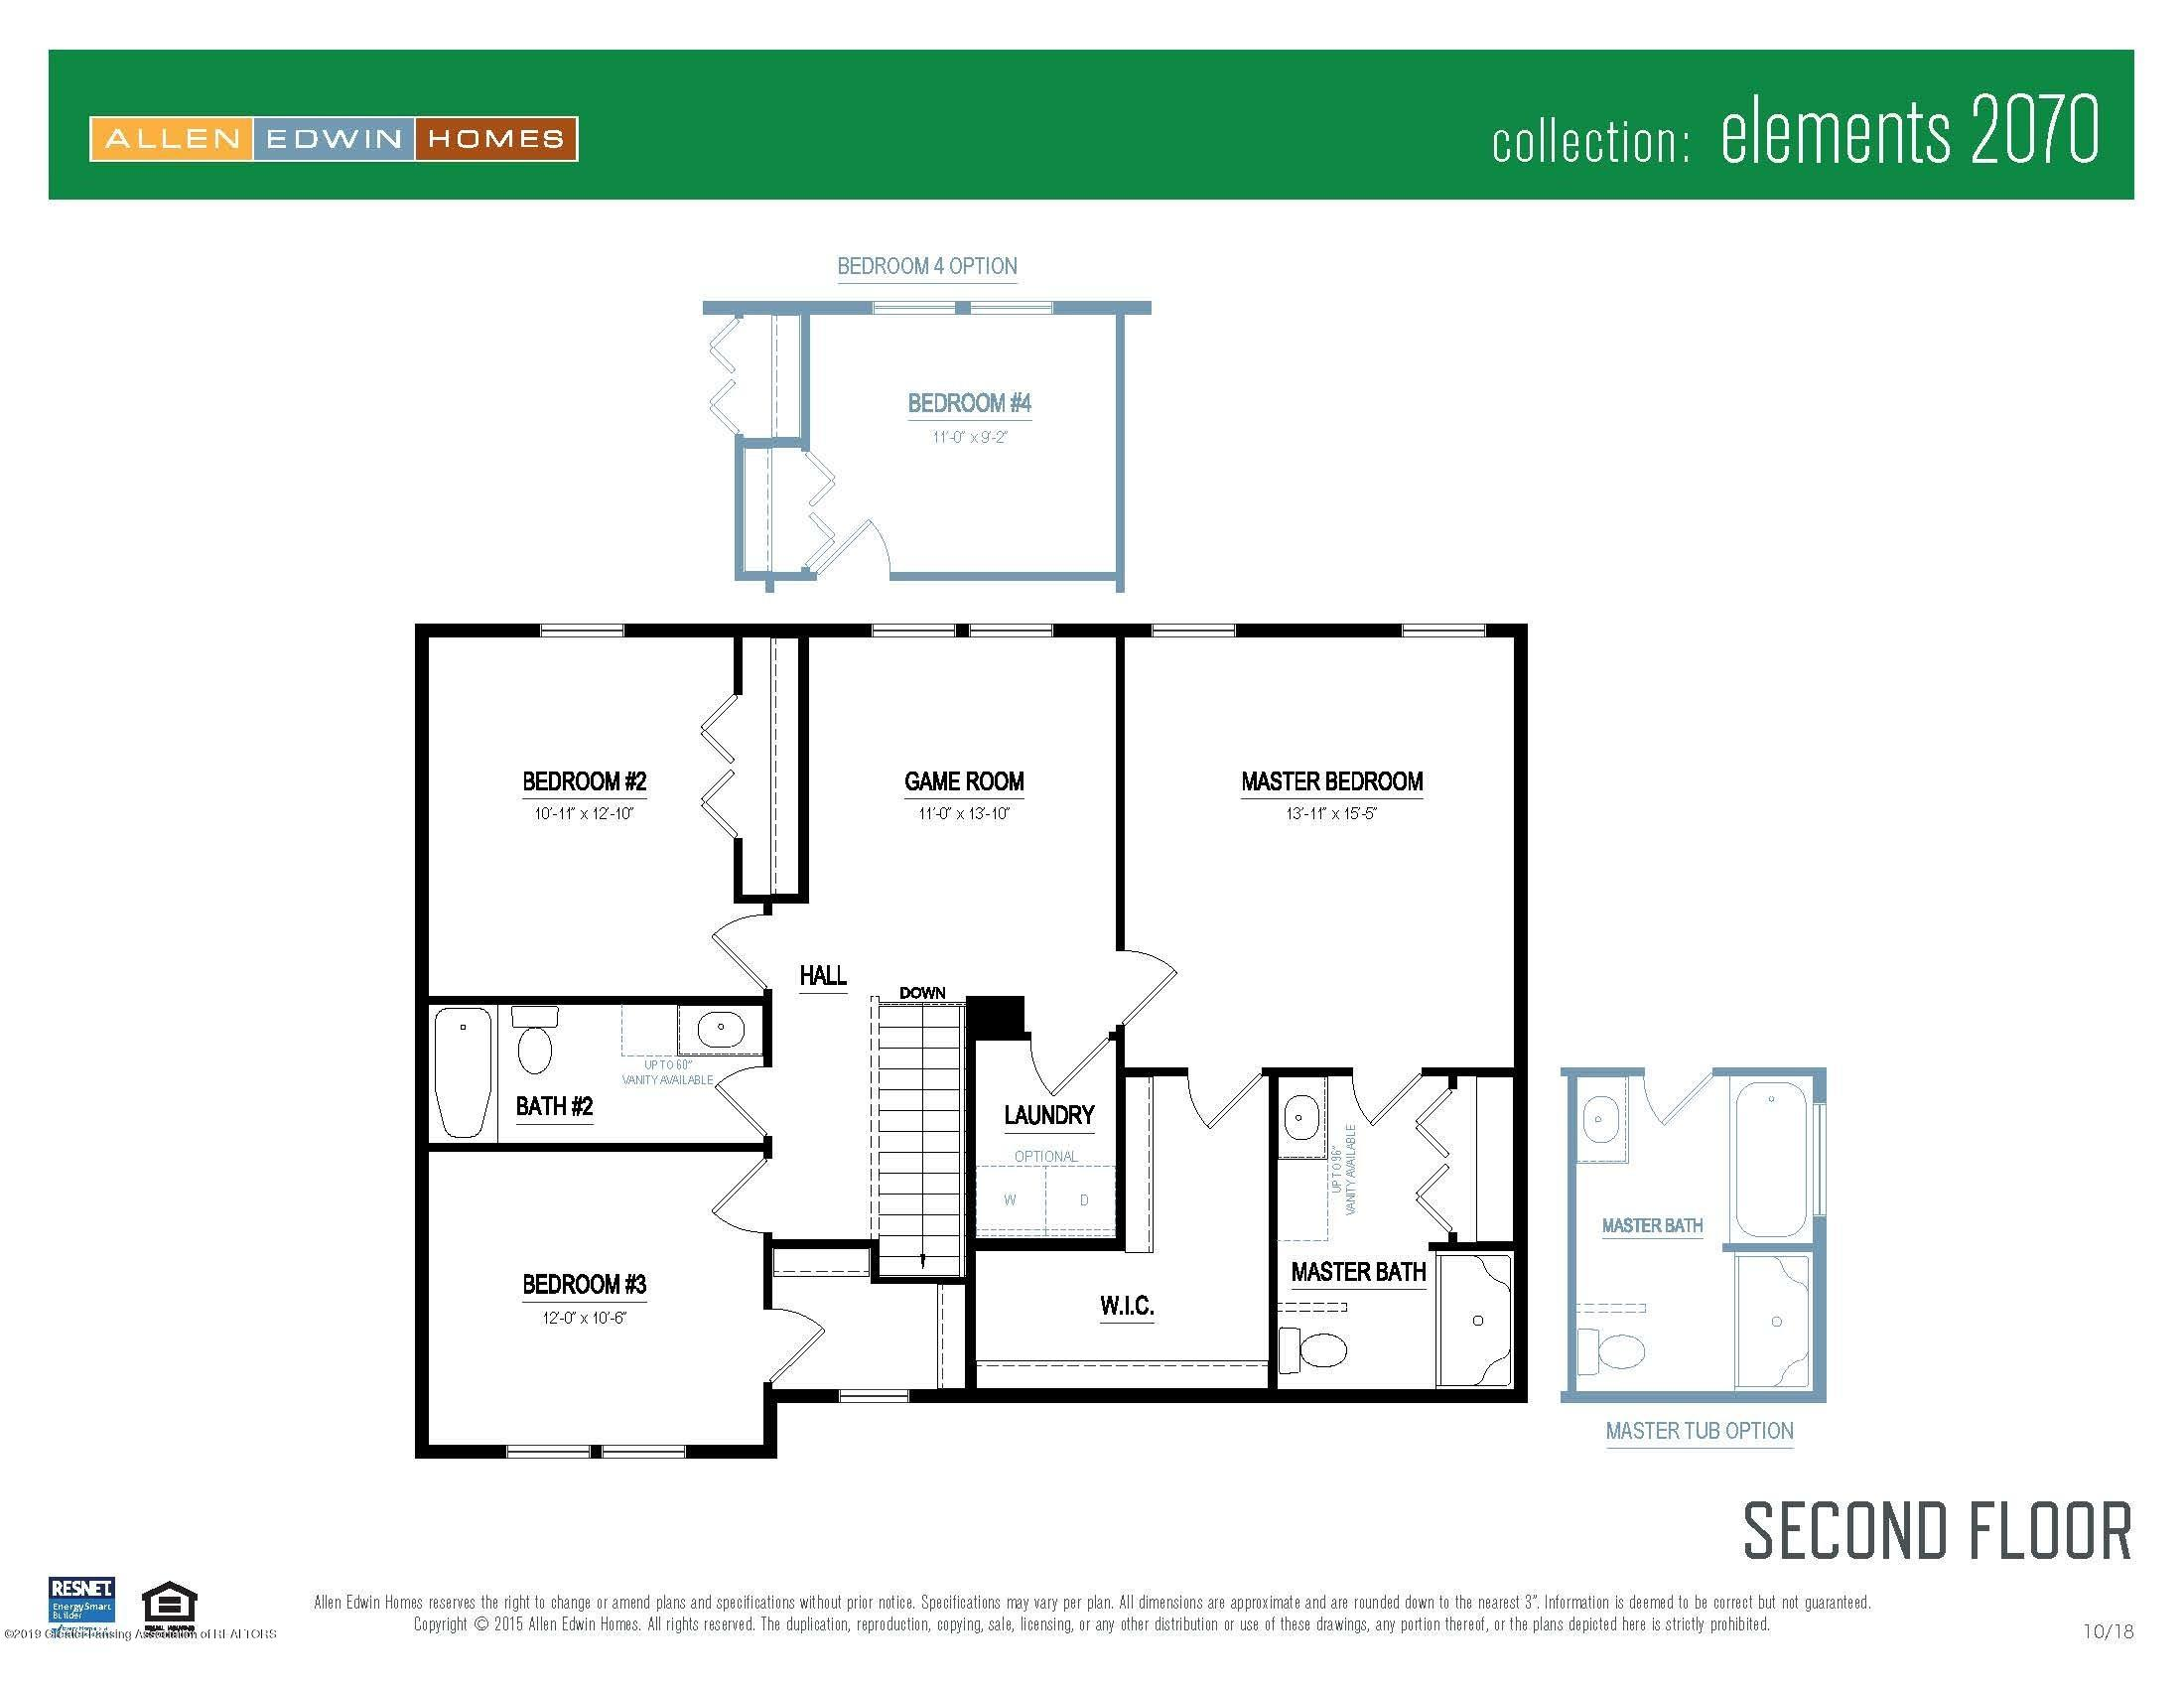 201 Ayla Drive - Elements 2070 V8.0a Second Floor - 20